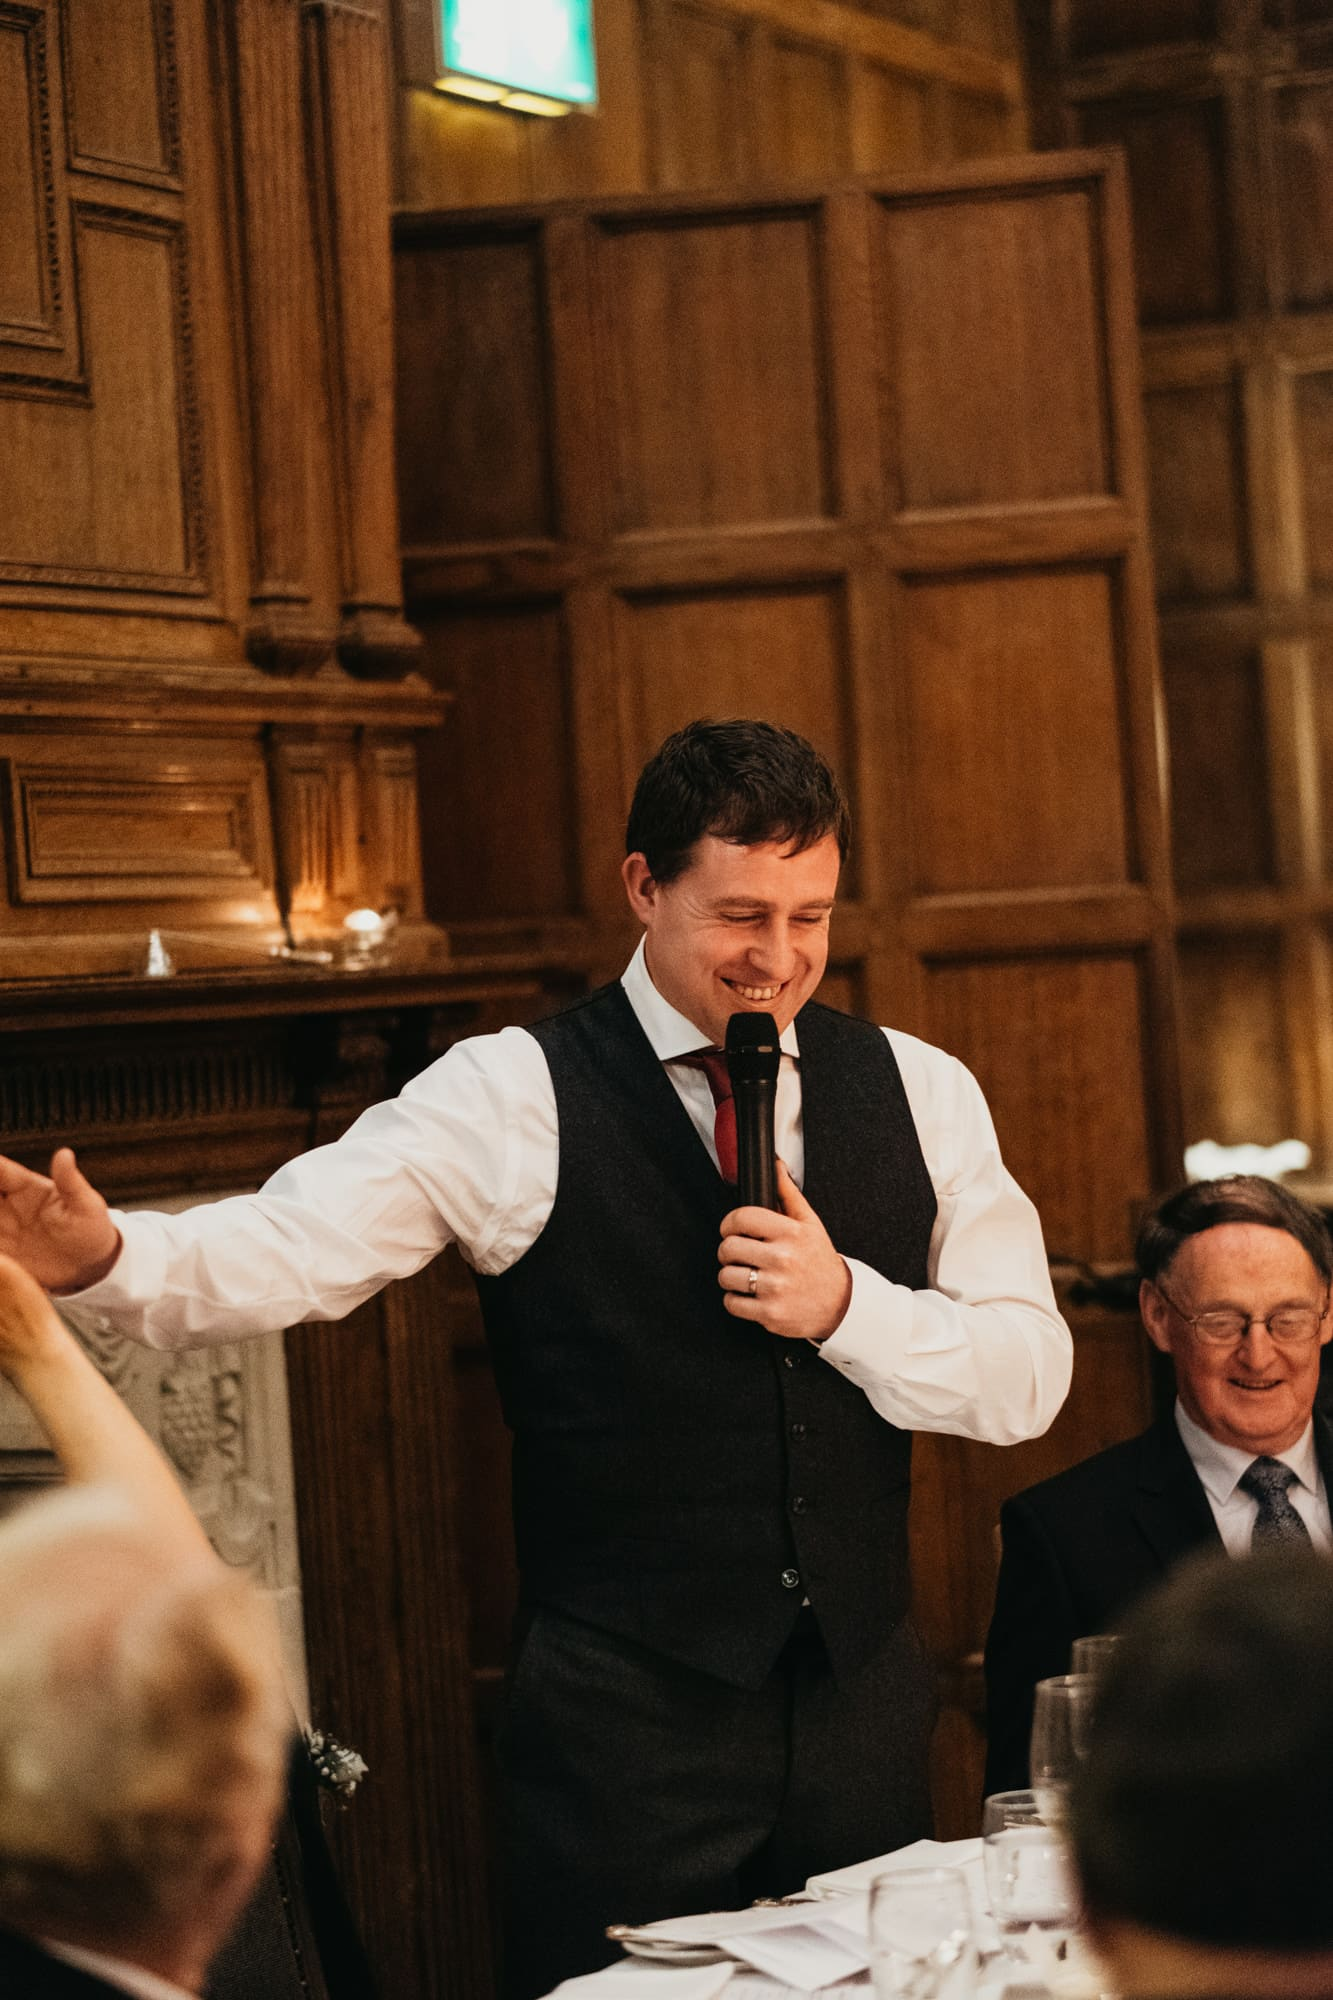 groom delivers his speech